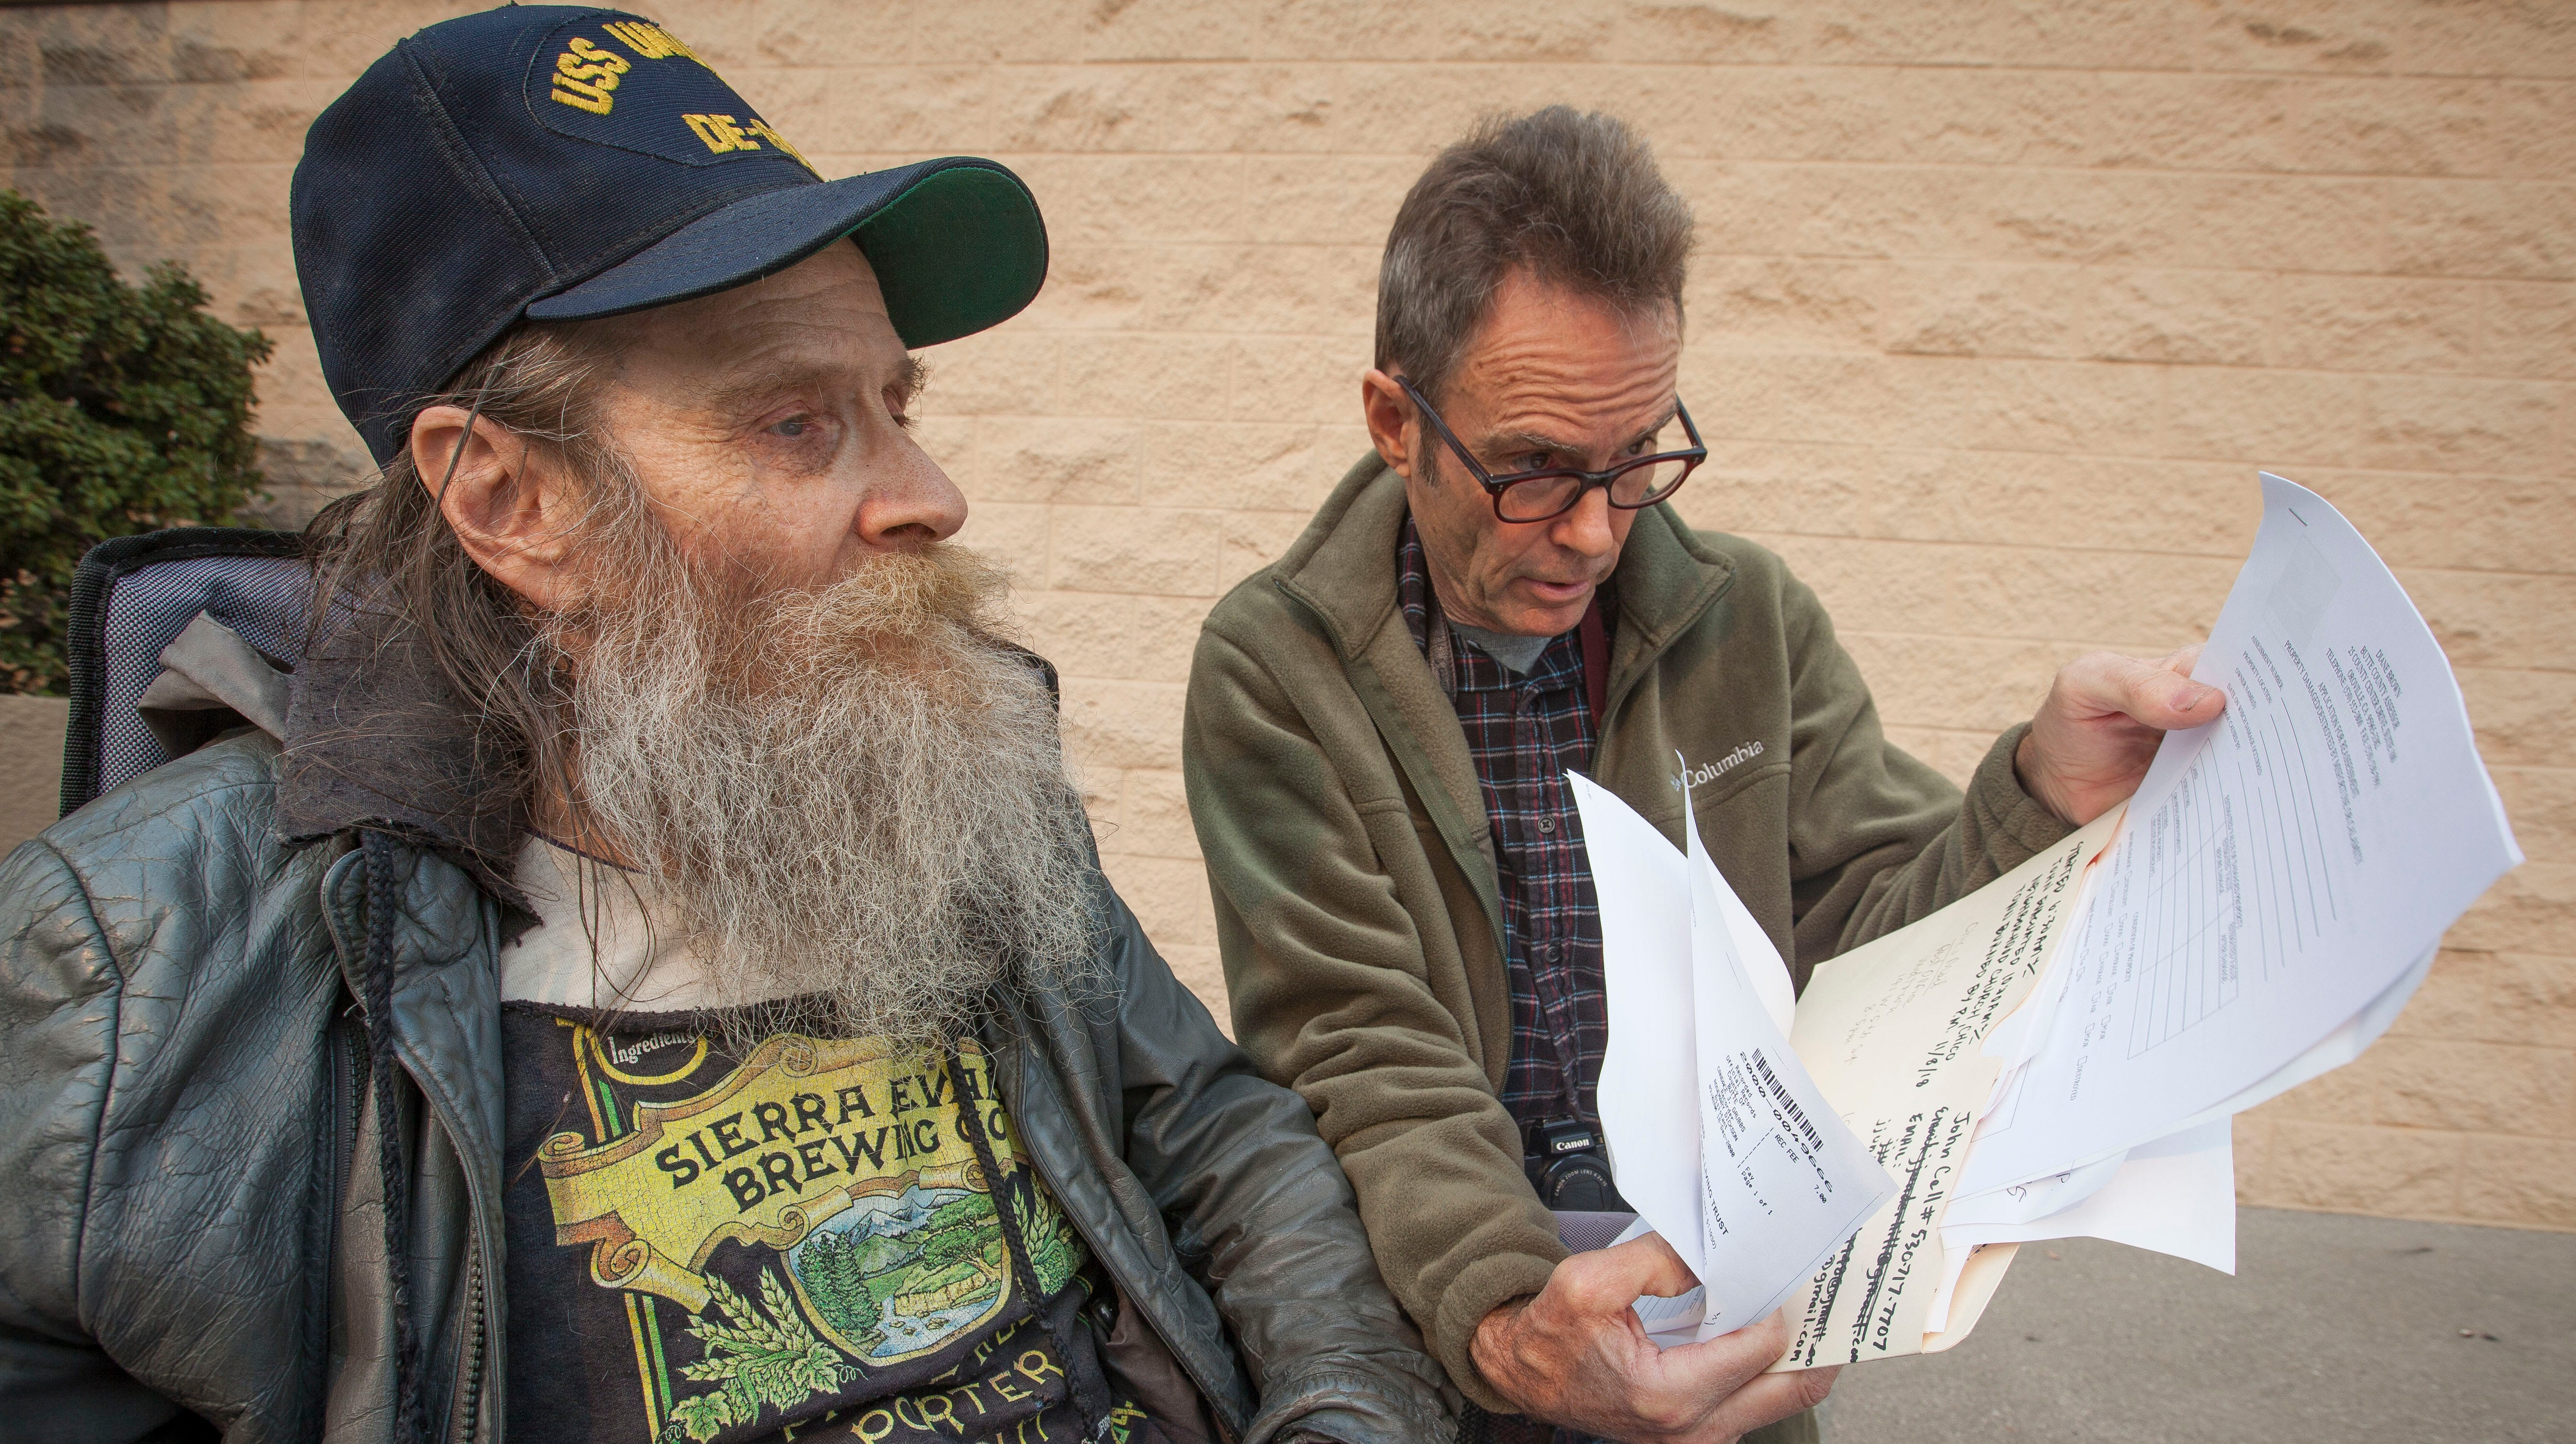 Larry Underhill, right, of Los Angeles, goes over paperwork with his brother John Jay Underhill, of Paradise, after they left the FEMA assistance center that opened in the old Sears store in the Chico Mall Friday, Nov. 16, 2018. John lost his home, most of his personal identification information and all of his belongings when the Camp Fire devastated the area. The center is set up for fire survivors to have access to local, state and federal assistance to begin the process of rebuilding.